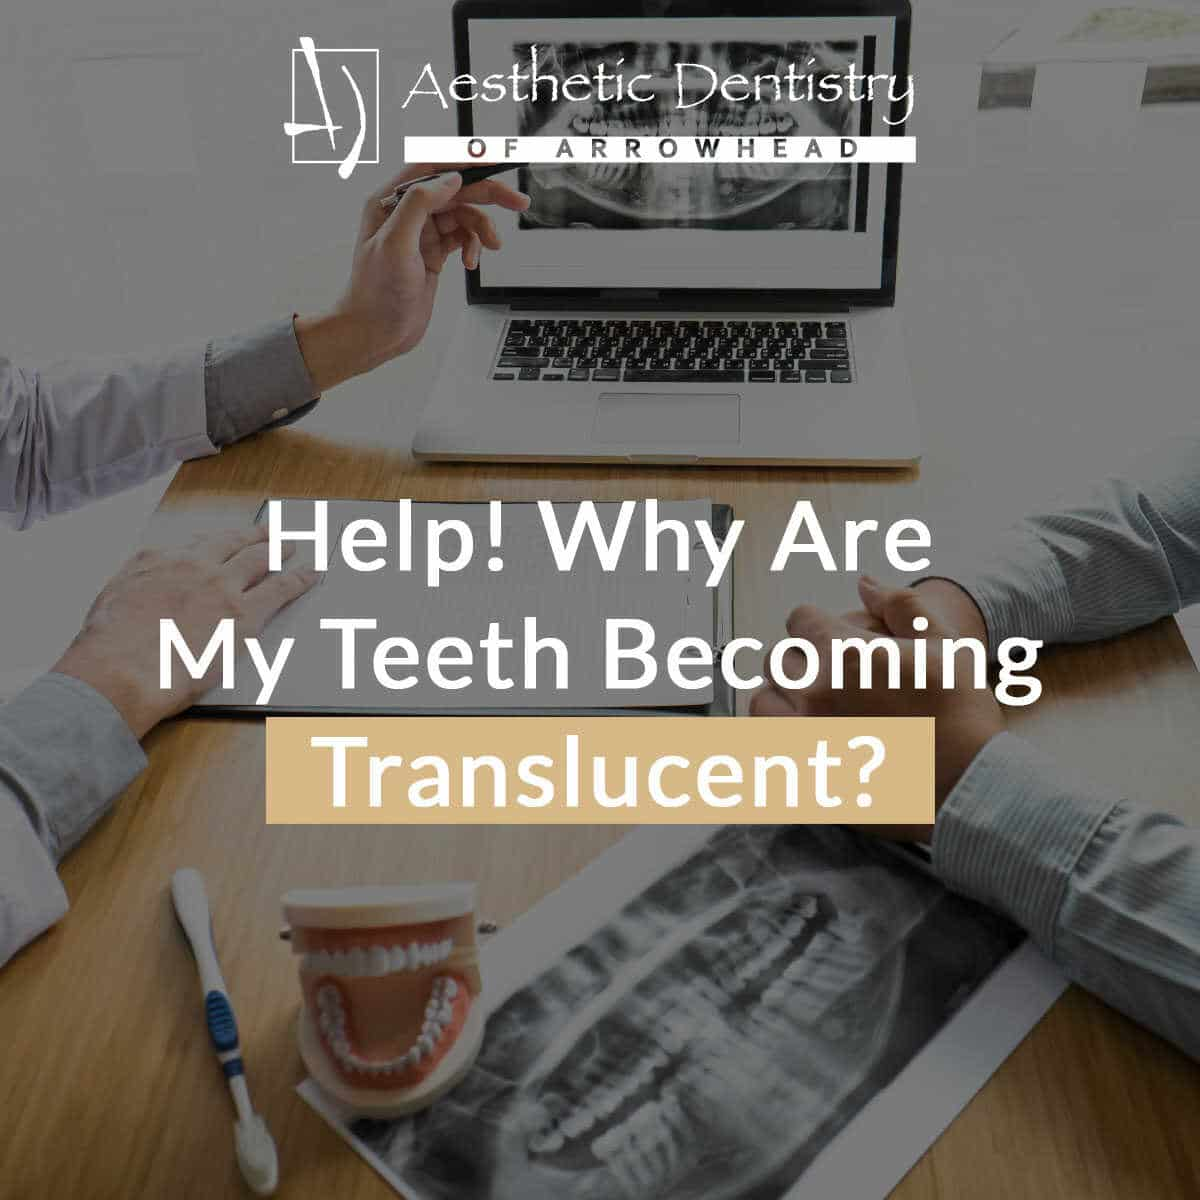 Help! Why Are My Teeth Becoming Translucent?